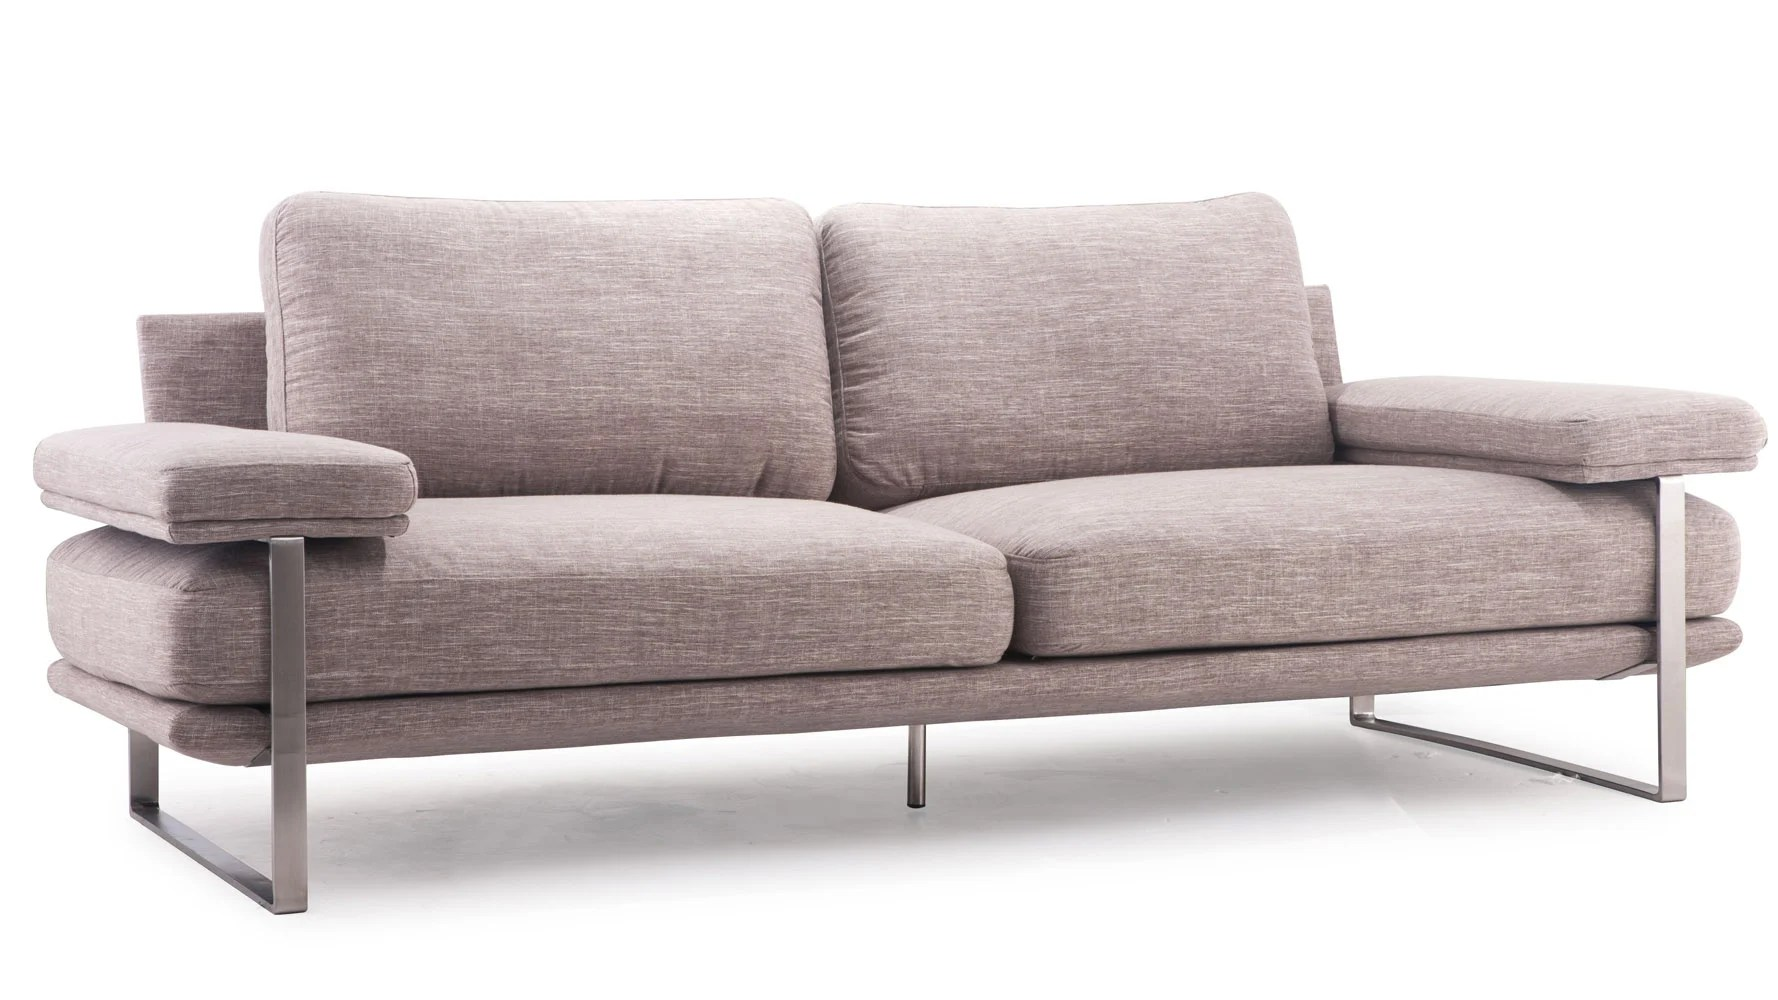 steel frame sofa how to clean stains off a leather boba zuri furniture next